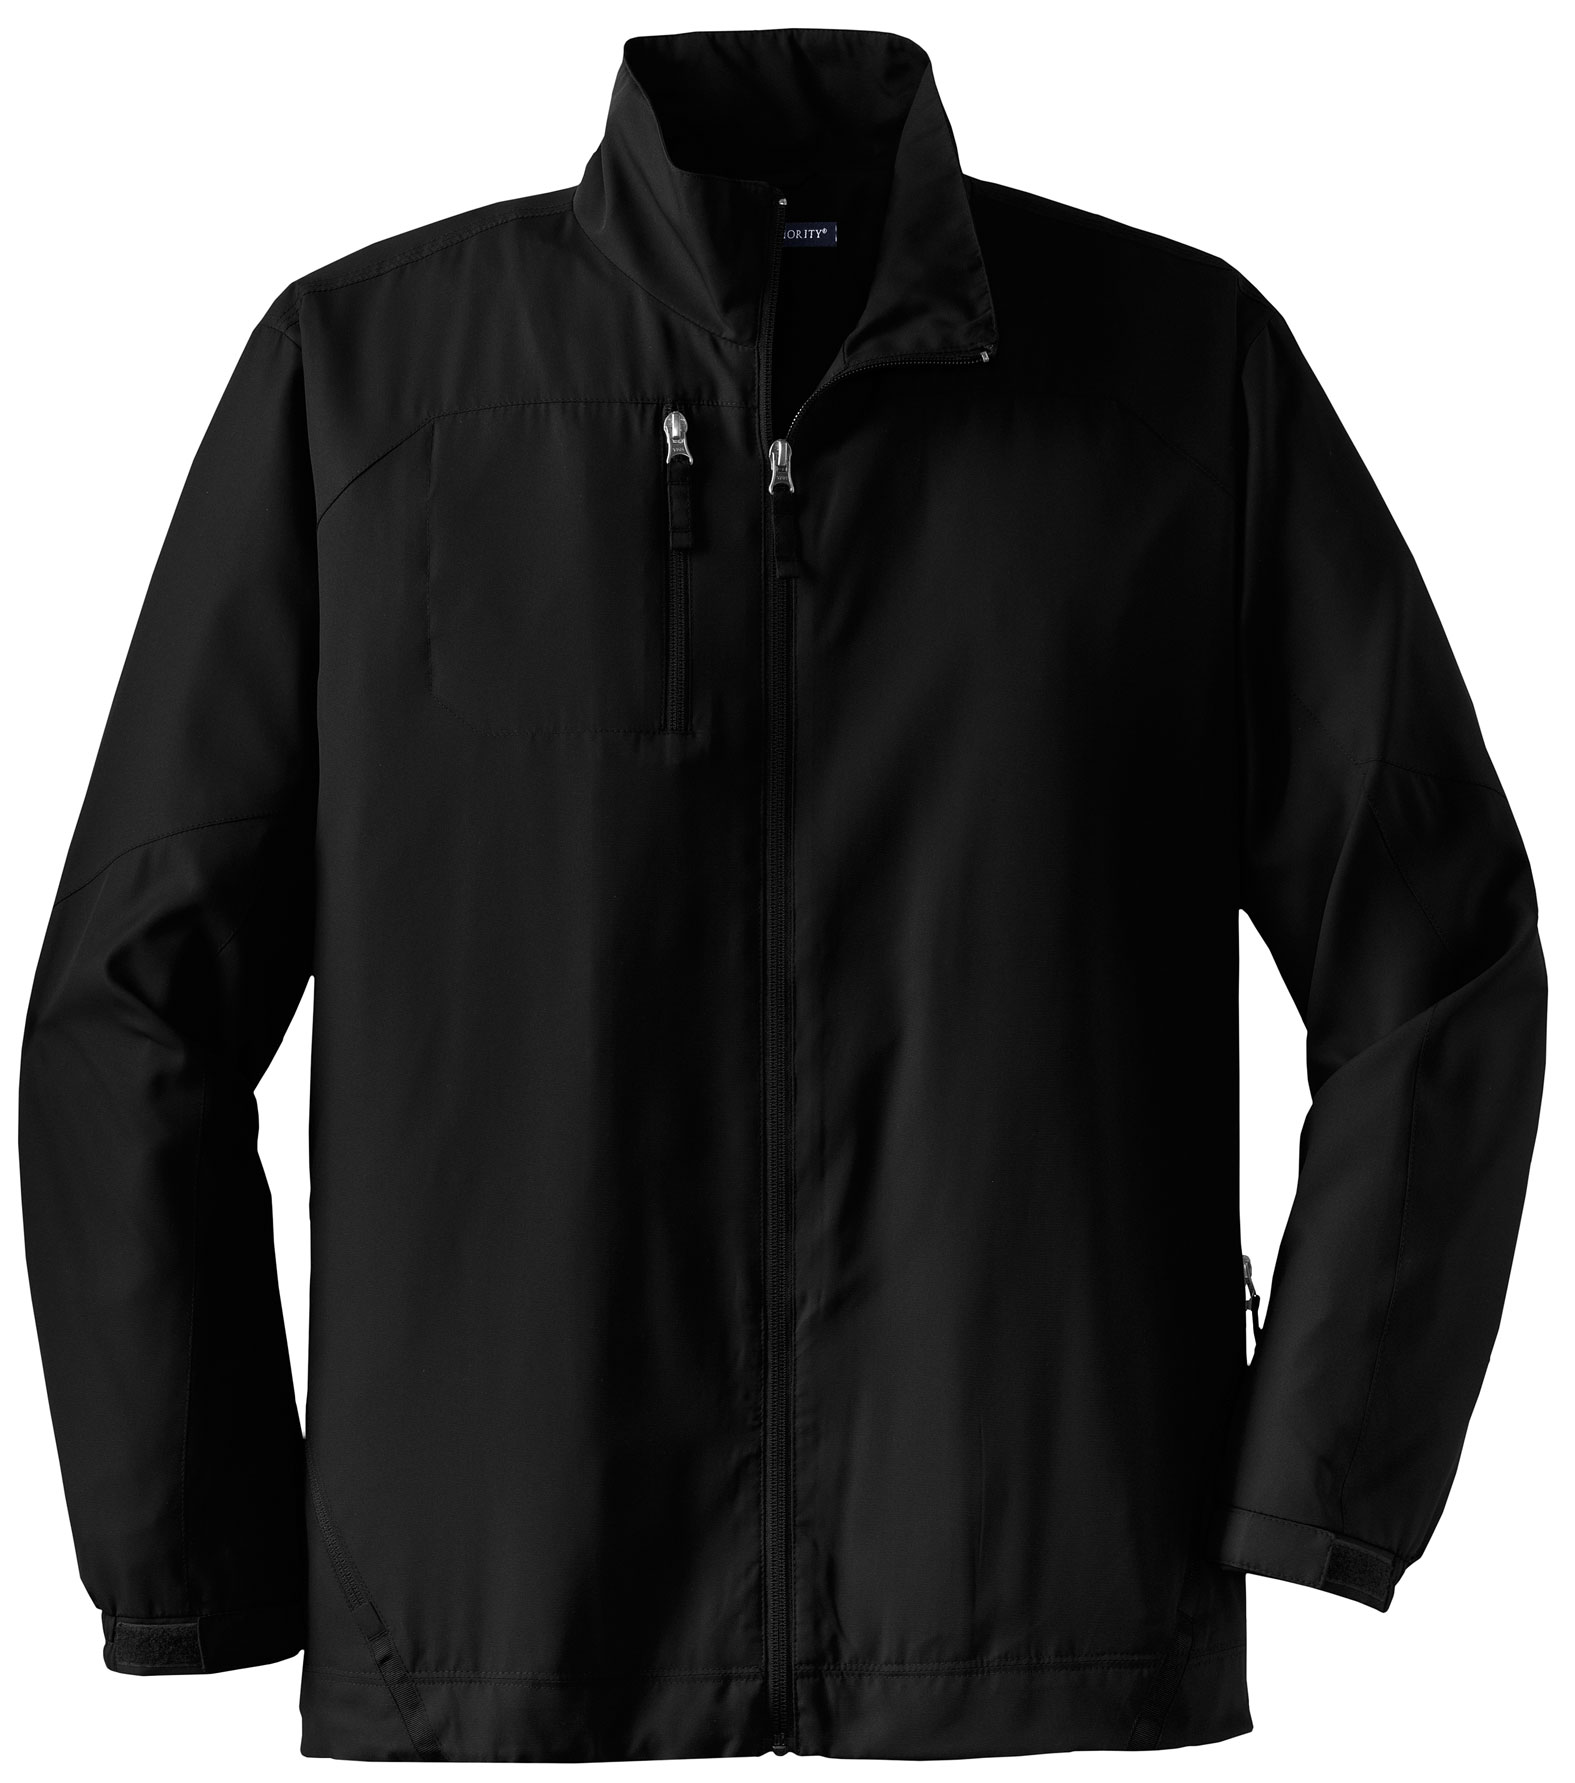 Mens Full-Zip Wind Jacket